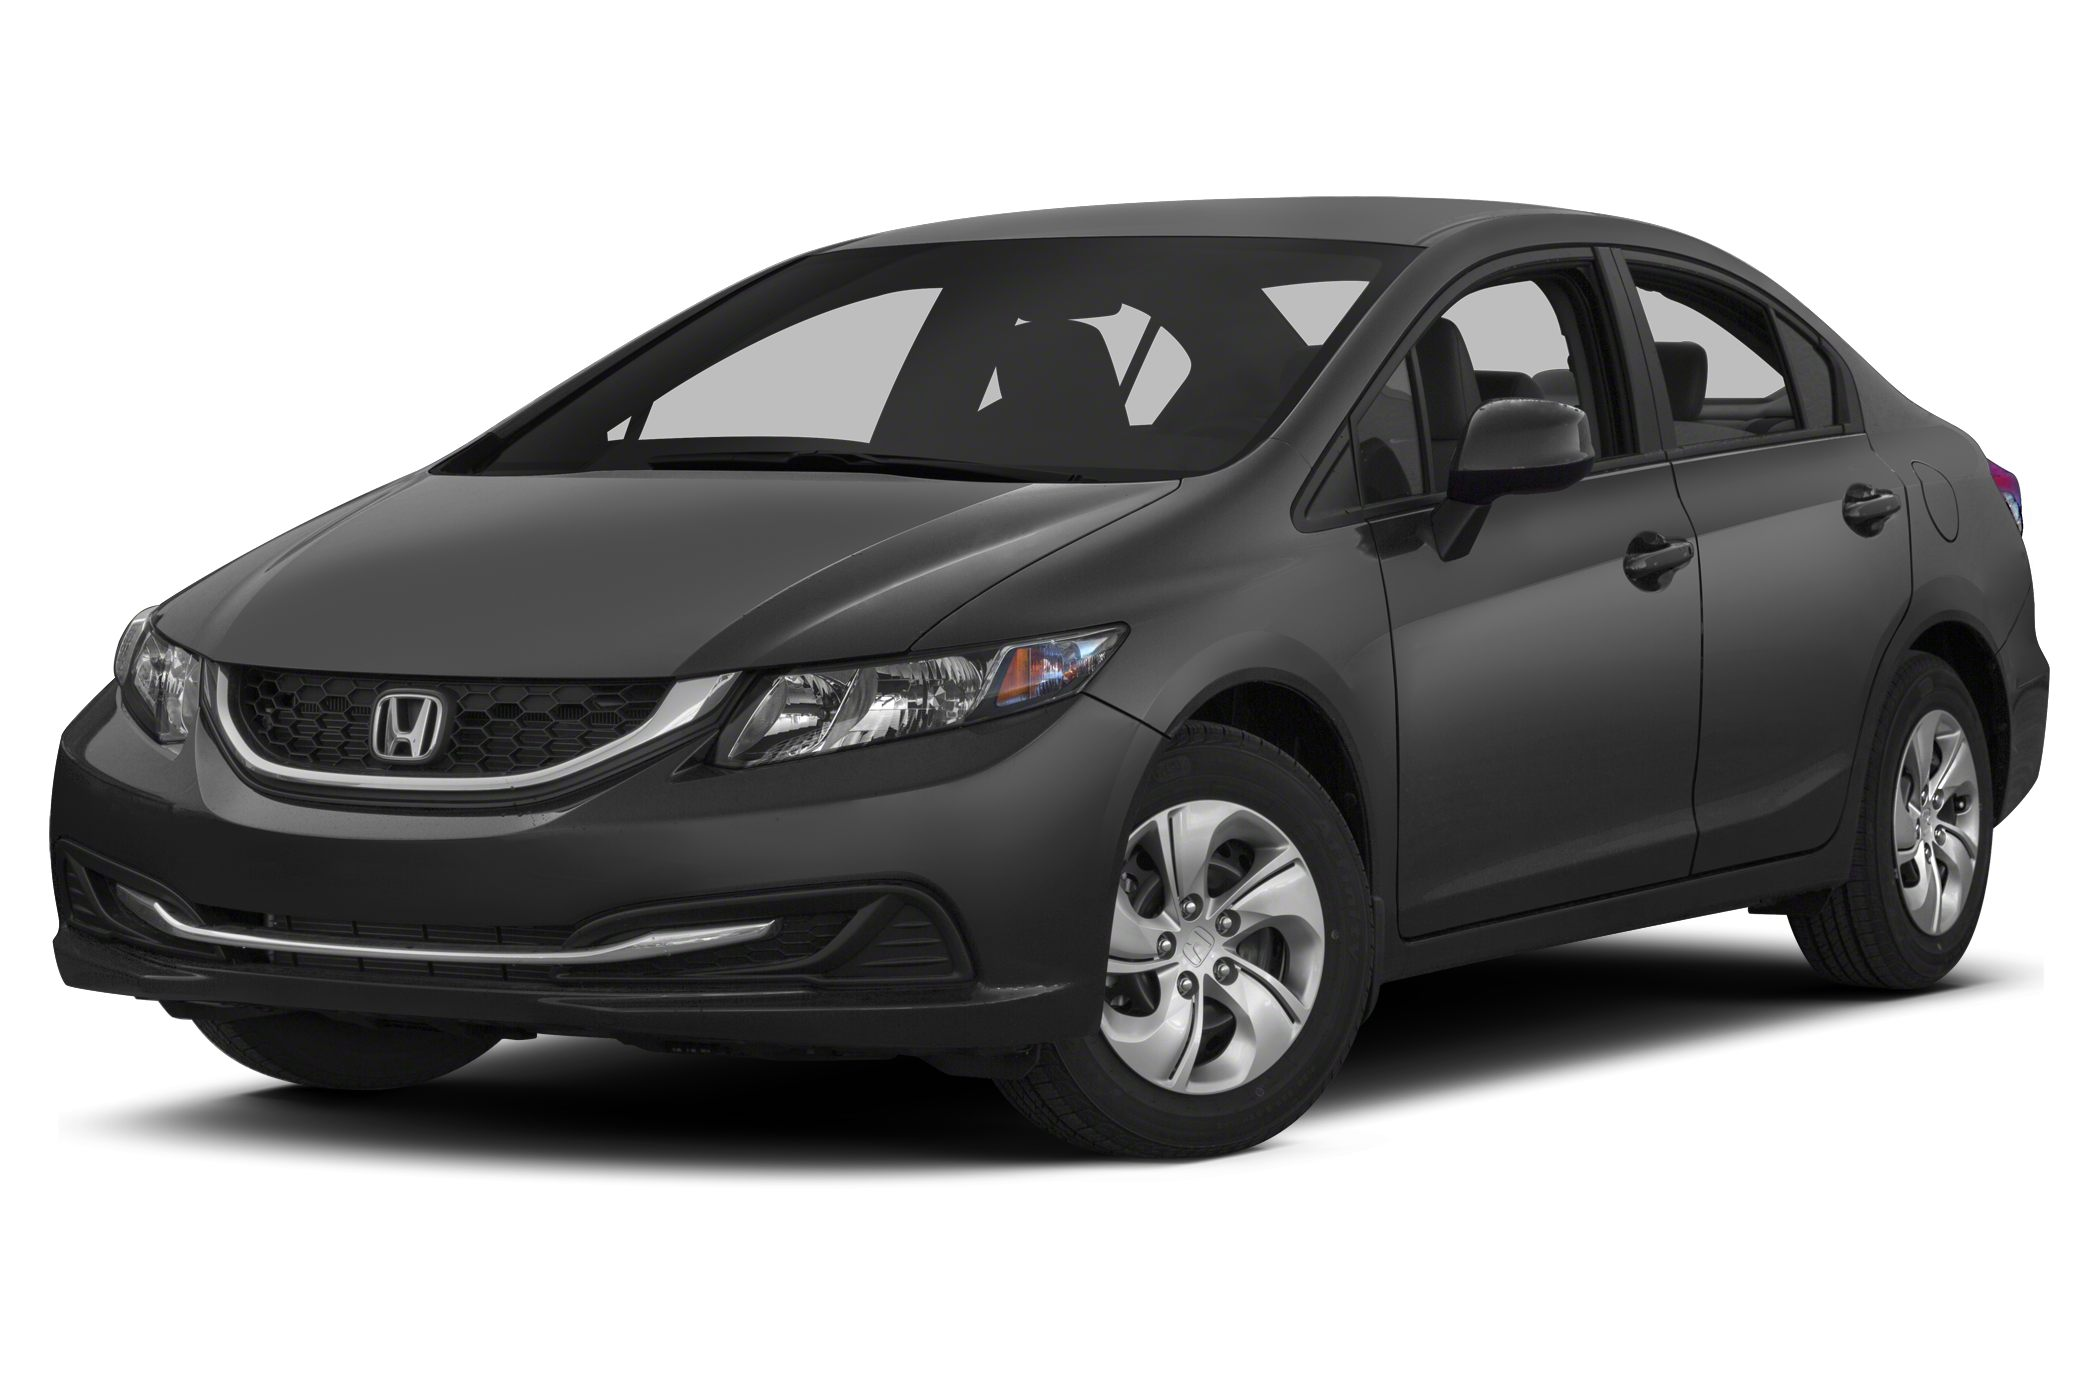 2013 Honda Civic LX Sedan for sale in Cincinnati for $17,405 with 19,684 miles